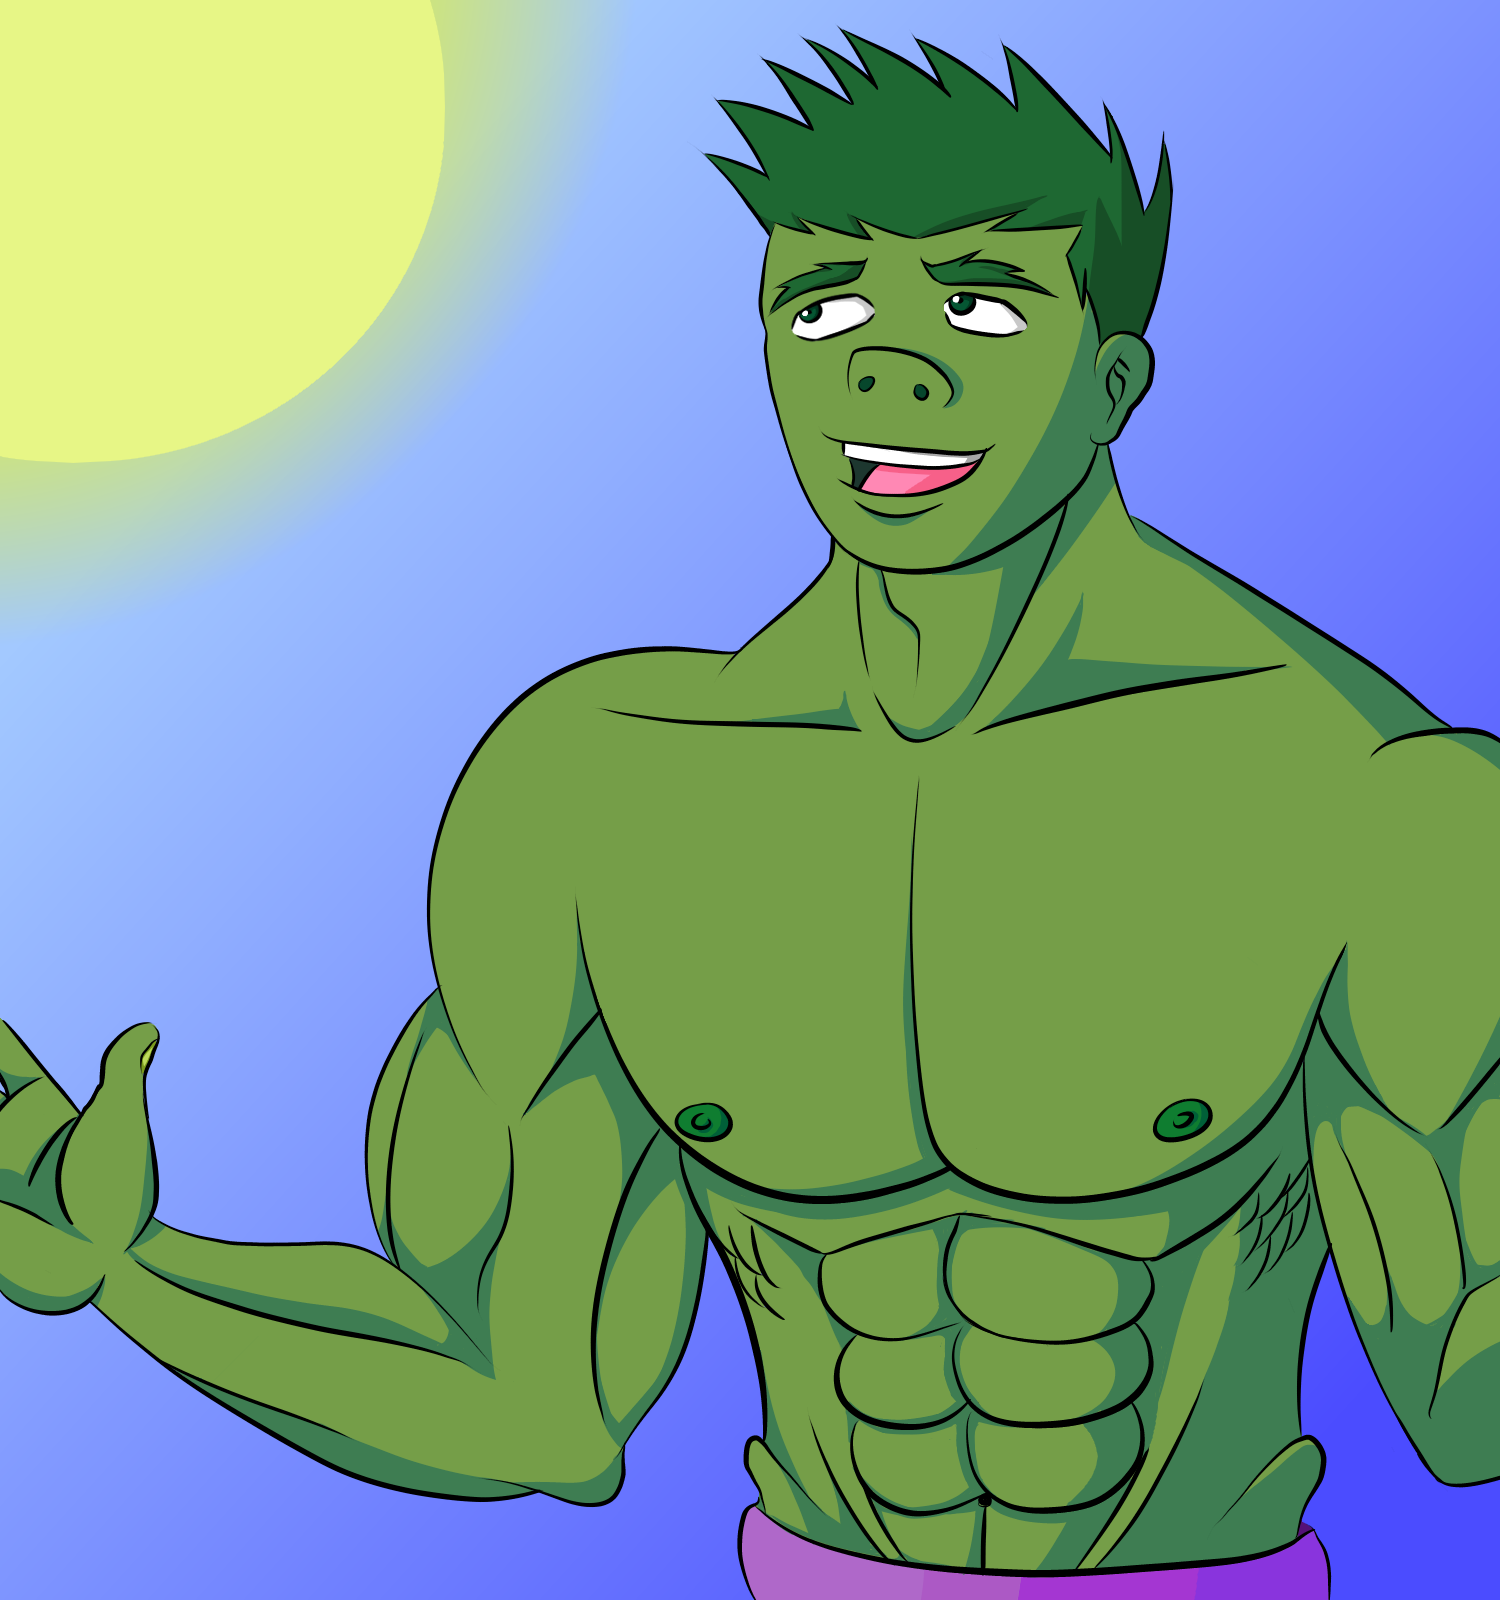 The Hulk is looking at the sun by SailorSeiyaDigiJem